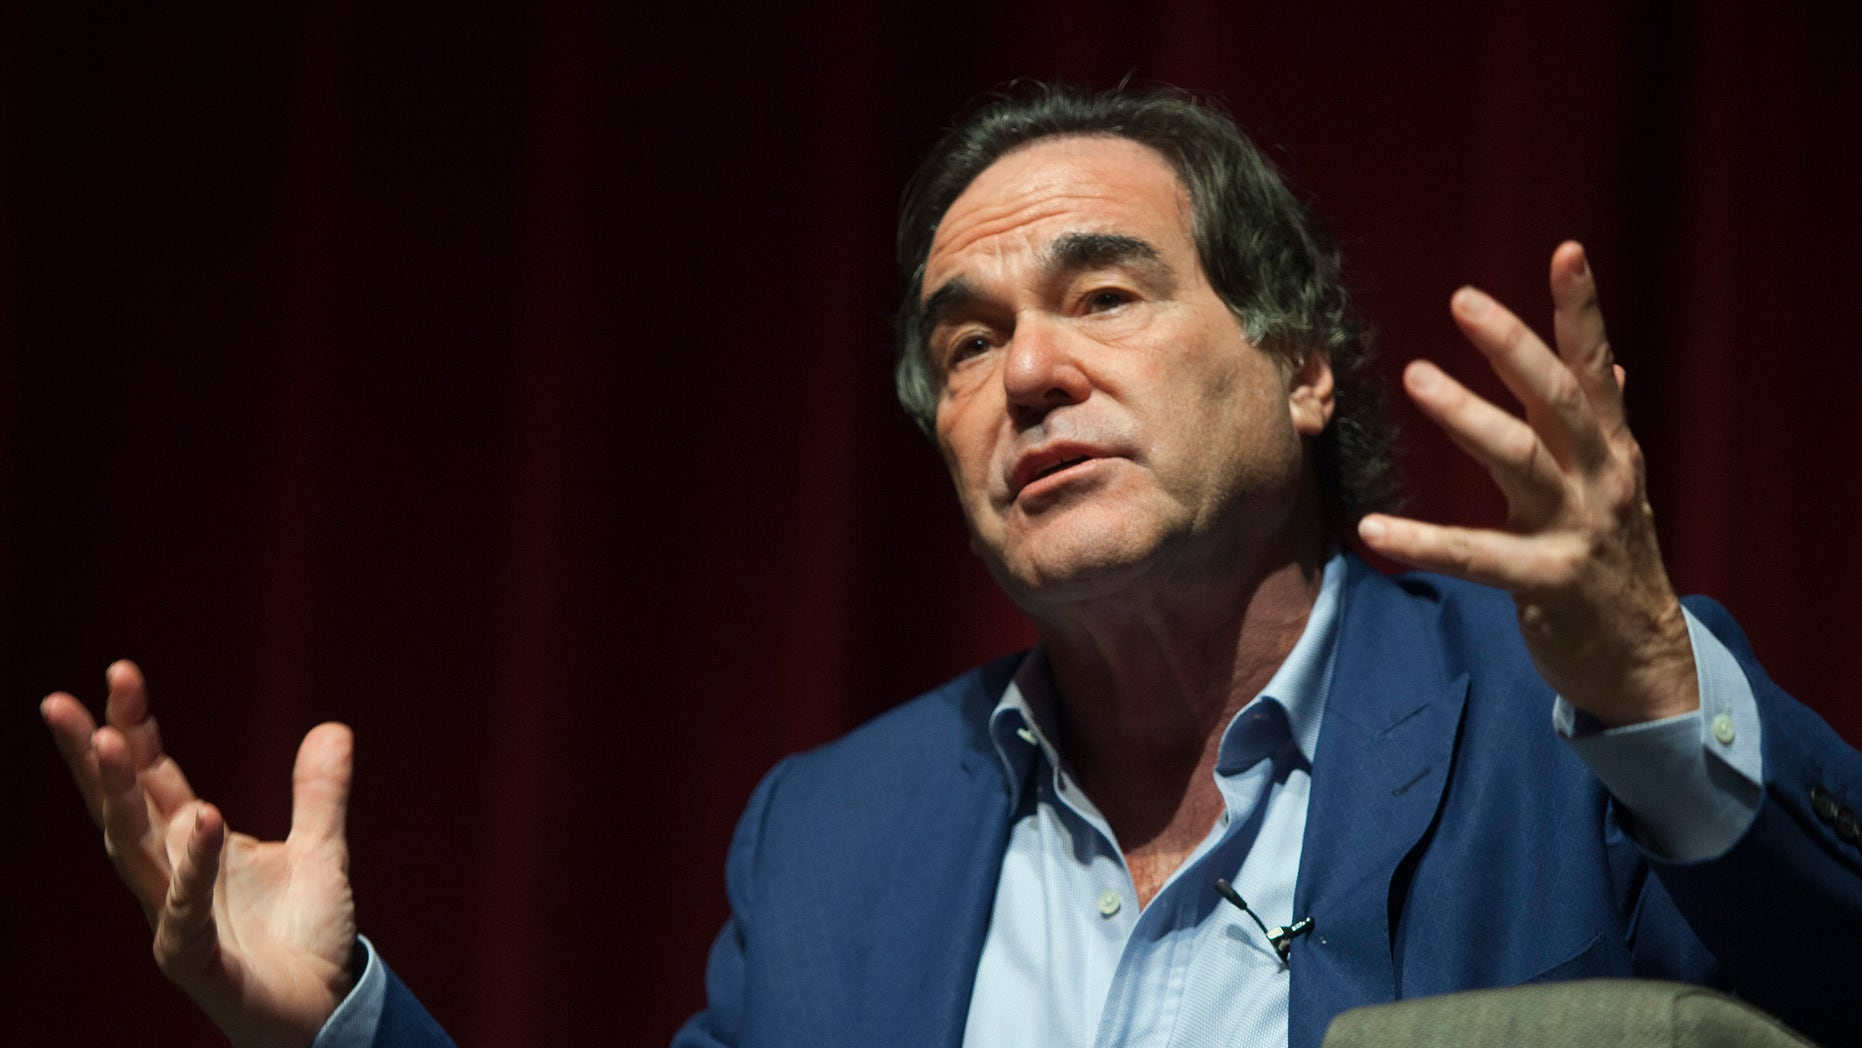 U.S. film director and screenwriter Oliver Stone speaks during a discussion with students at the University of Puerto Rico in San Juan Nov. 30, 2012.